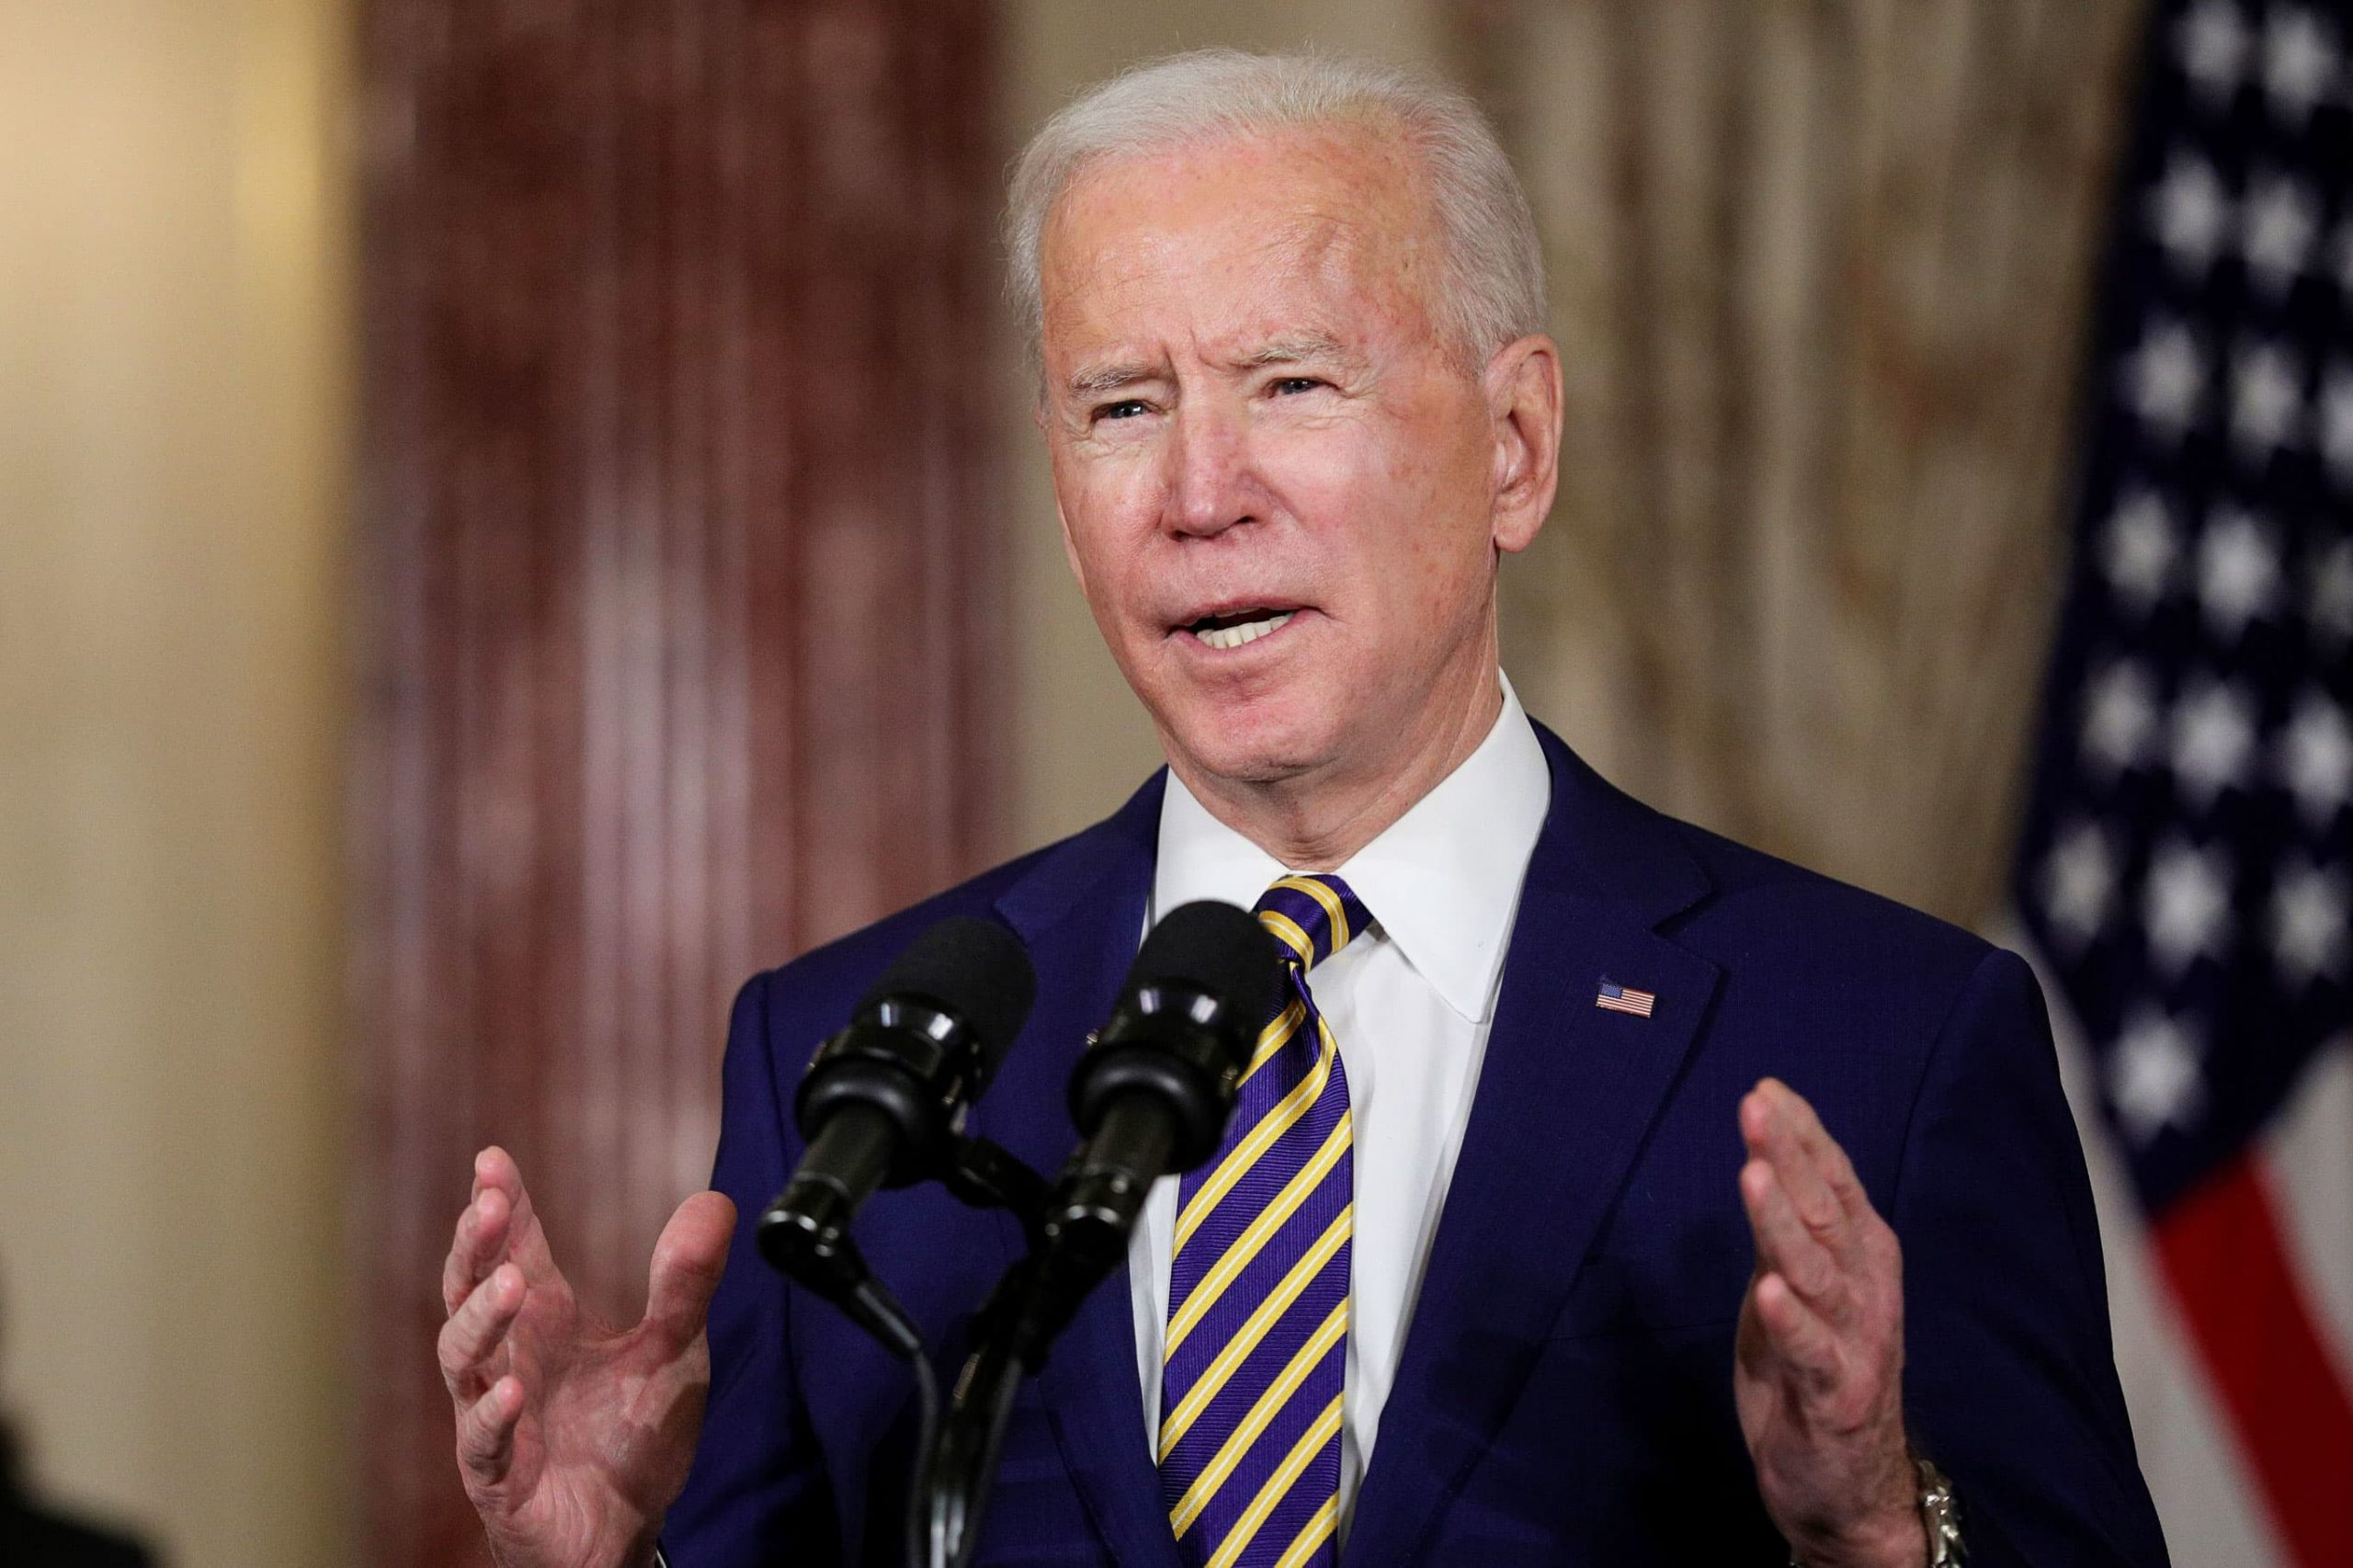 Biden says $15 minimum wage won't survive Covid relief talks, promises to push for pay hike later